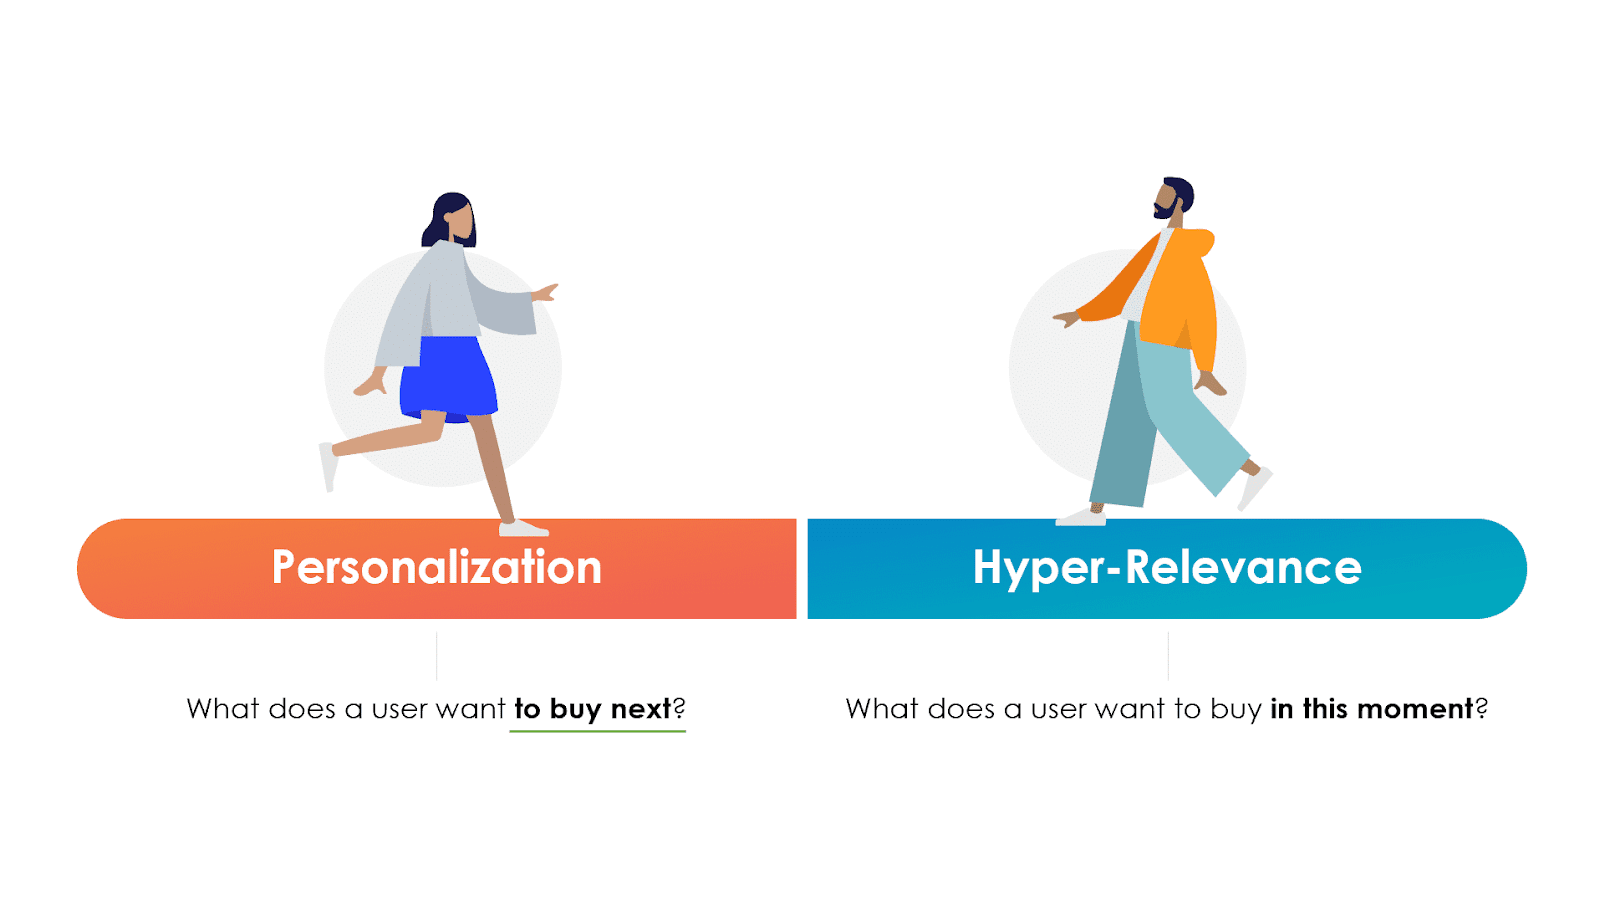 https://www.criteo.com/wp-content/uploads/2019/03/19_Whitepaper_02_AI_01_hyper-relevance2.png